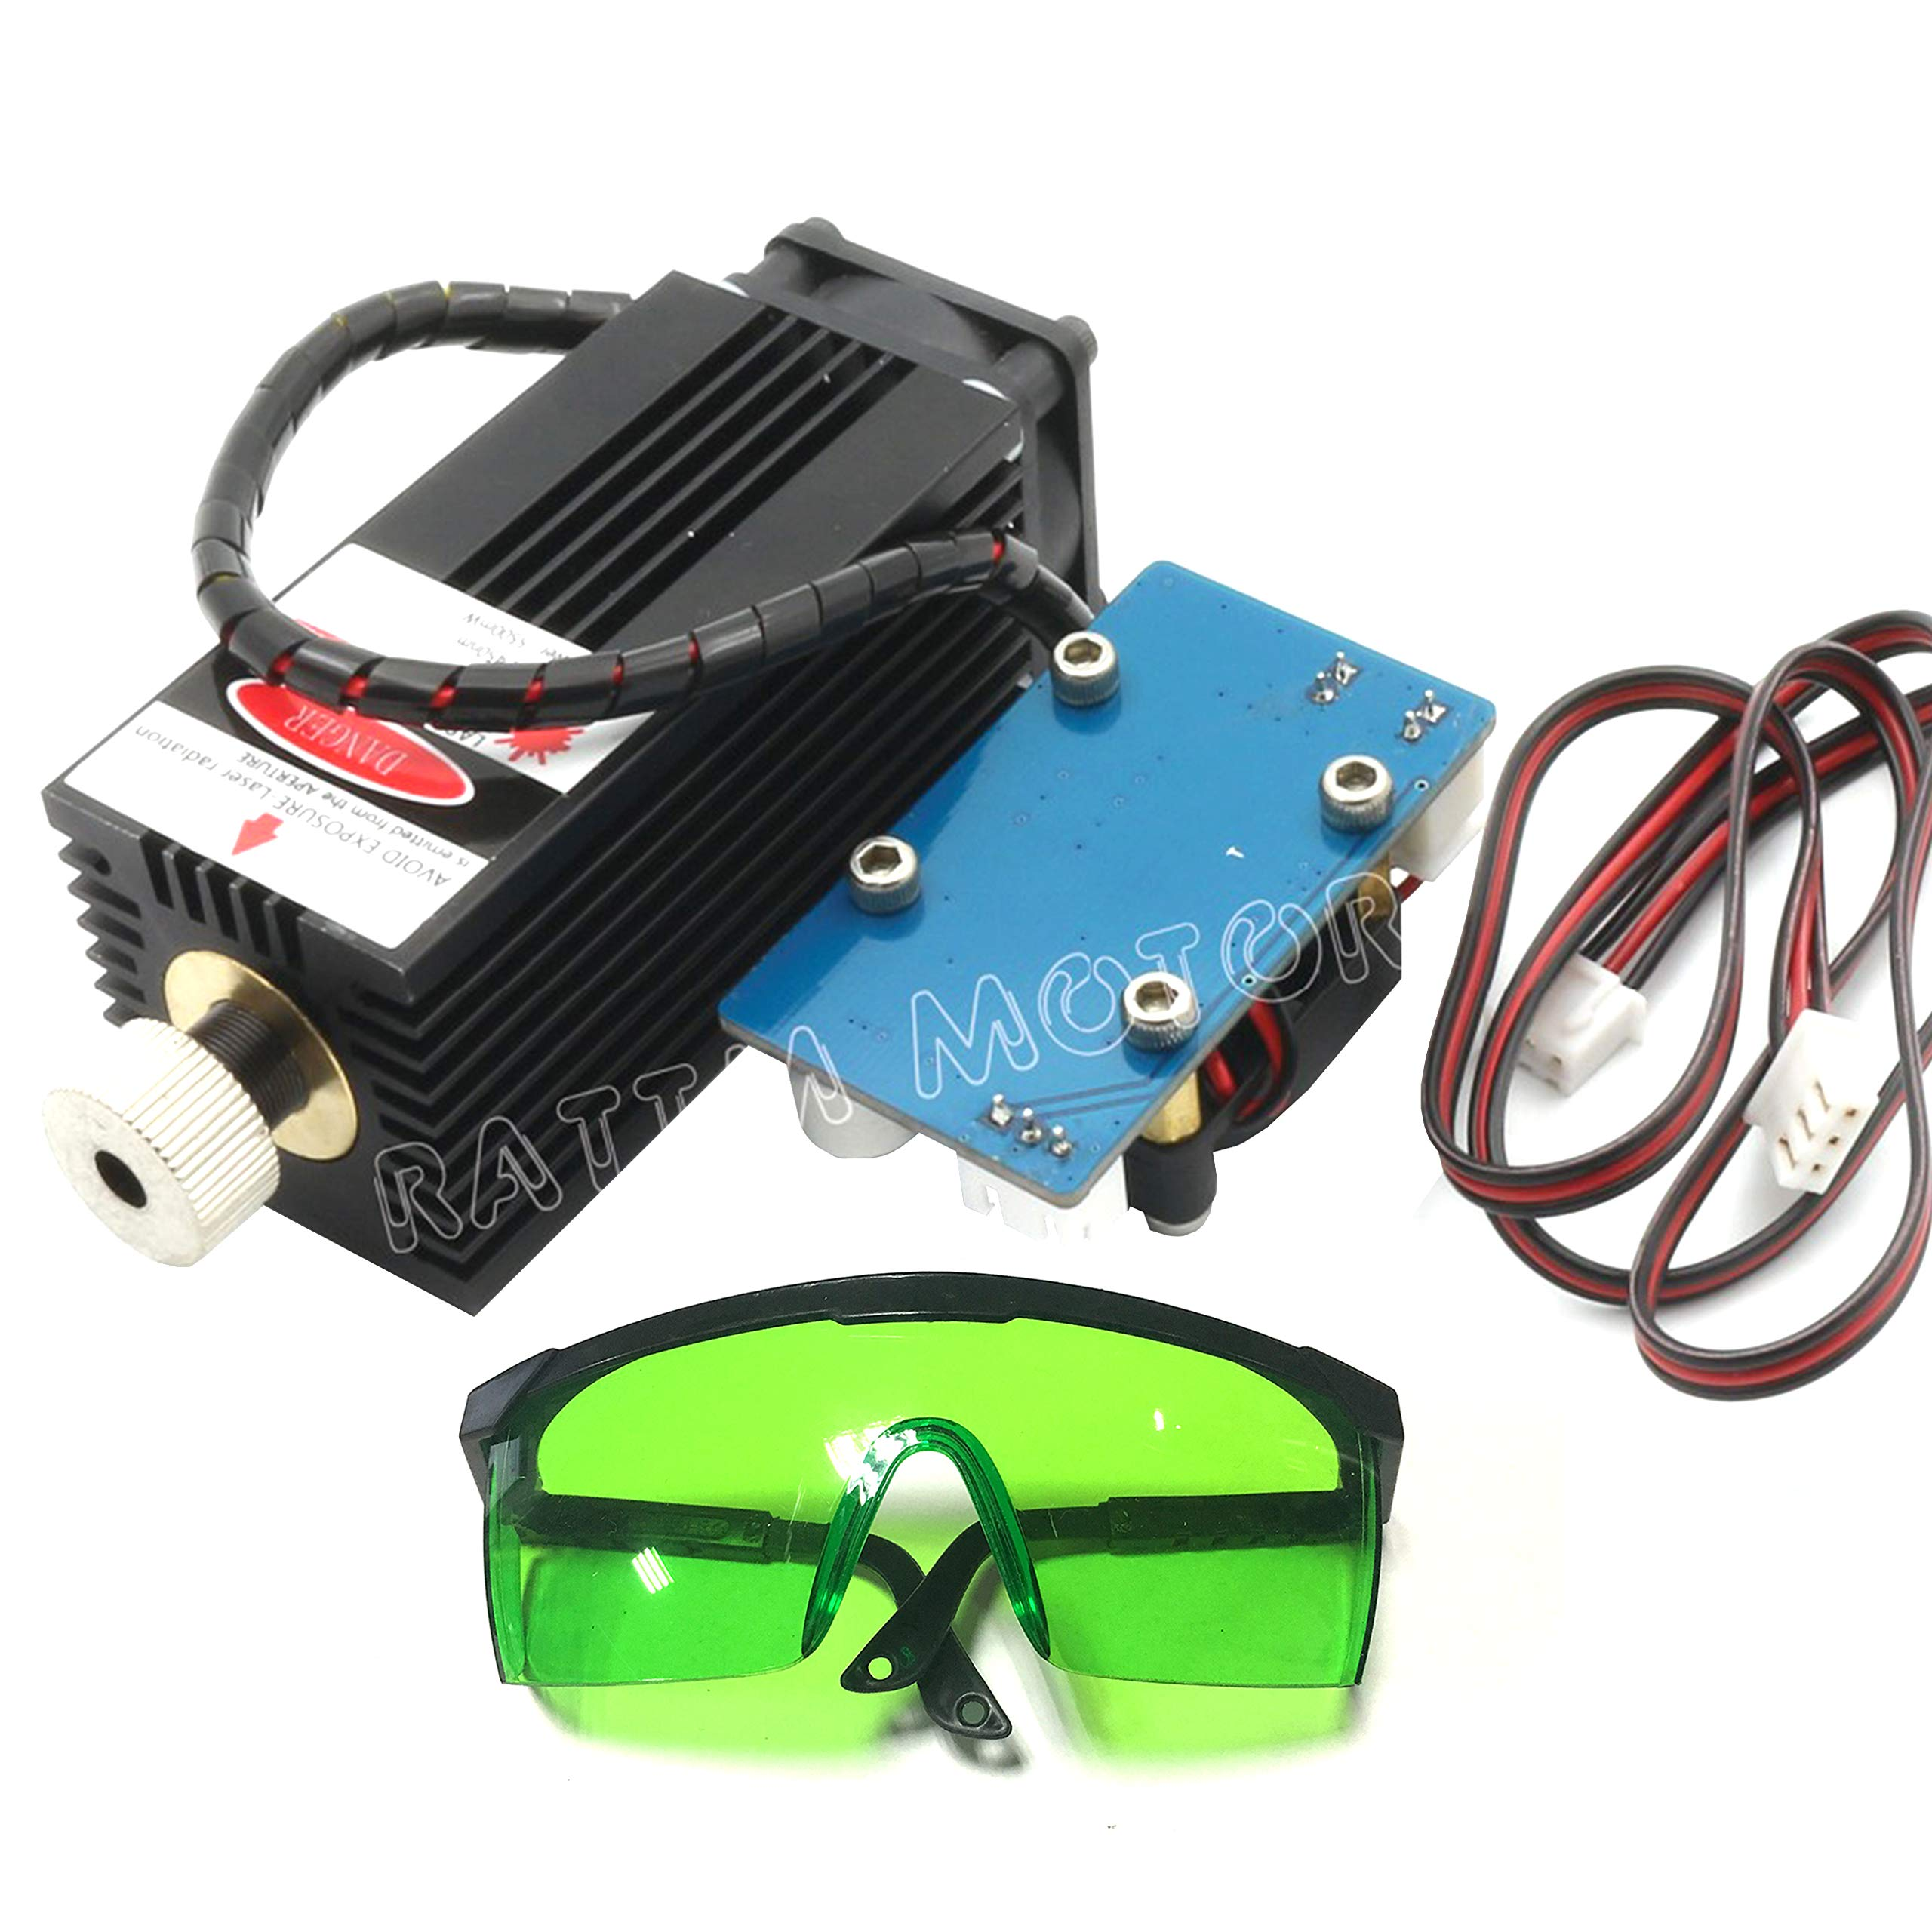 3 Axis CNC 3018 PRO GRBL DIY Mini Engraving Milling Rounter Laser Machine Working Area 30x18x4.5cm + 5500mW 450nW Laser with Protective Glasses